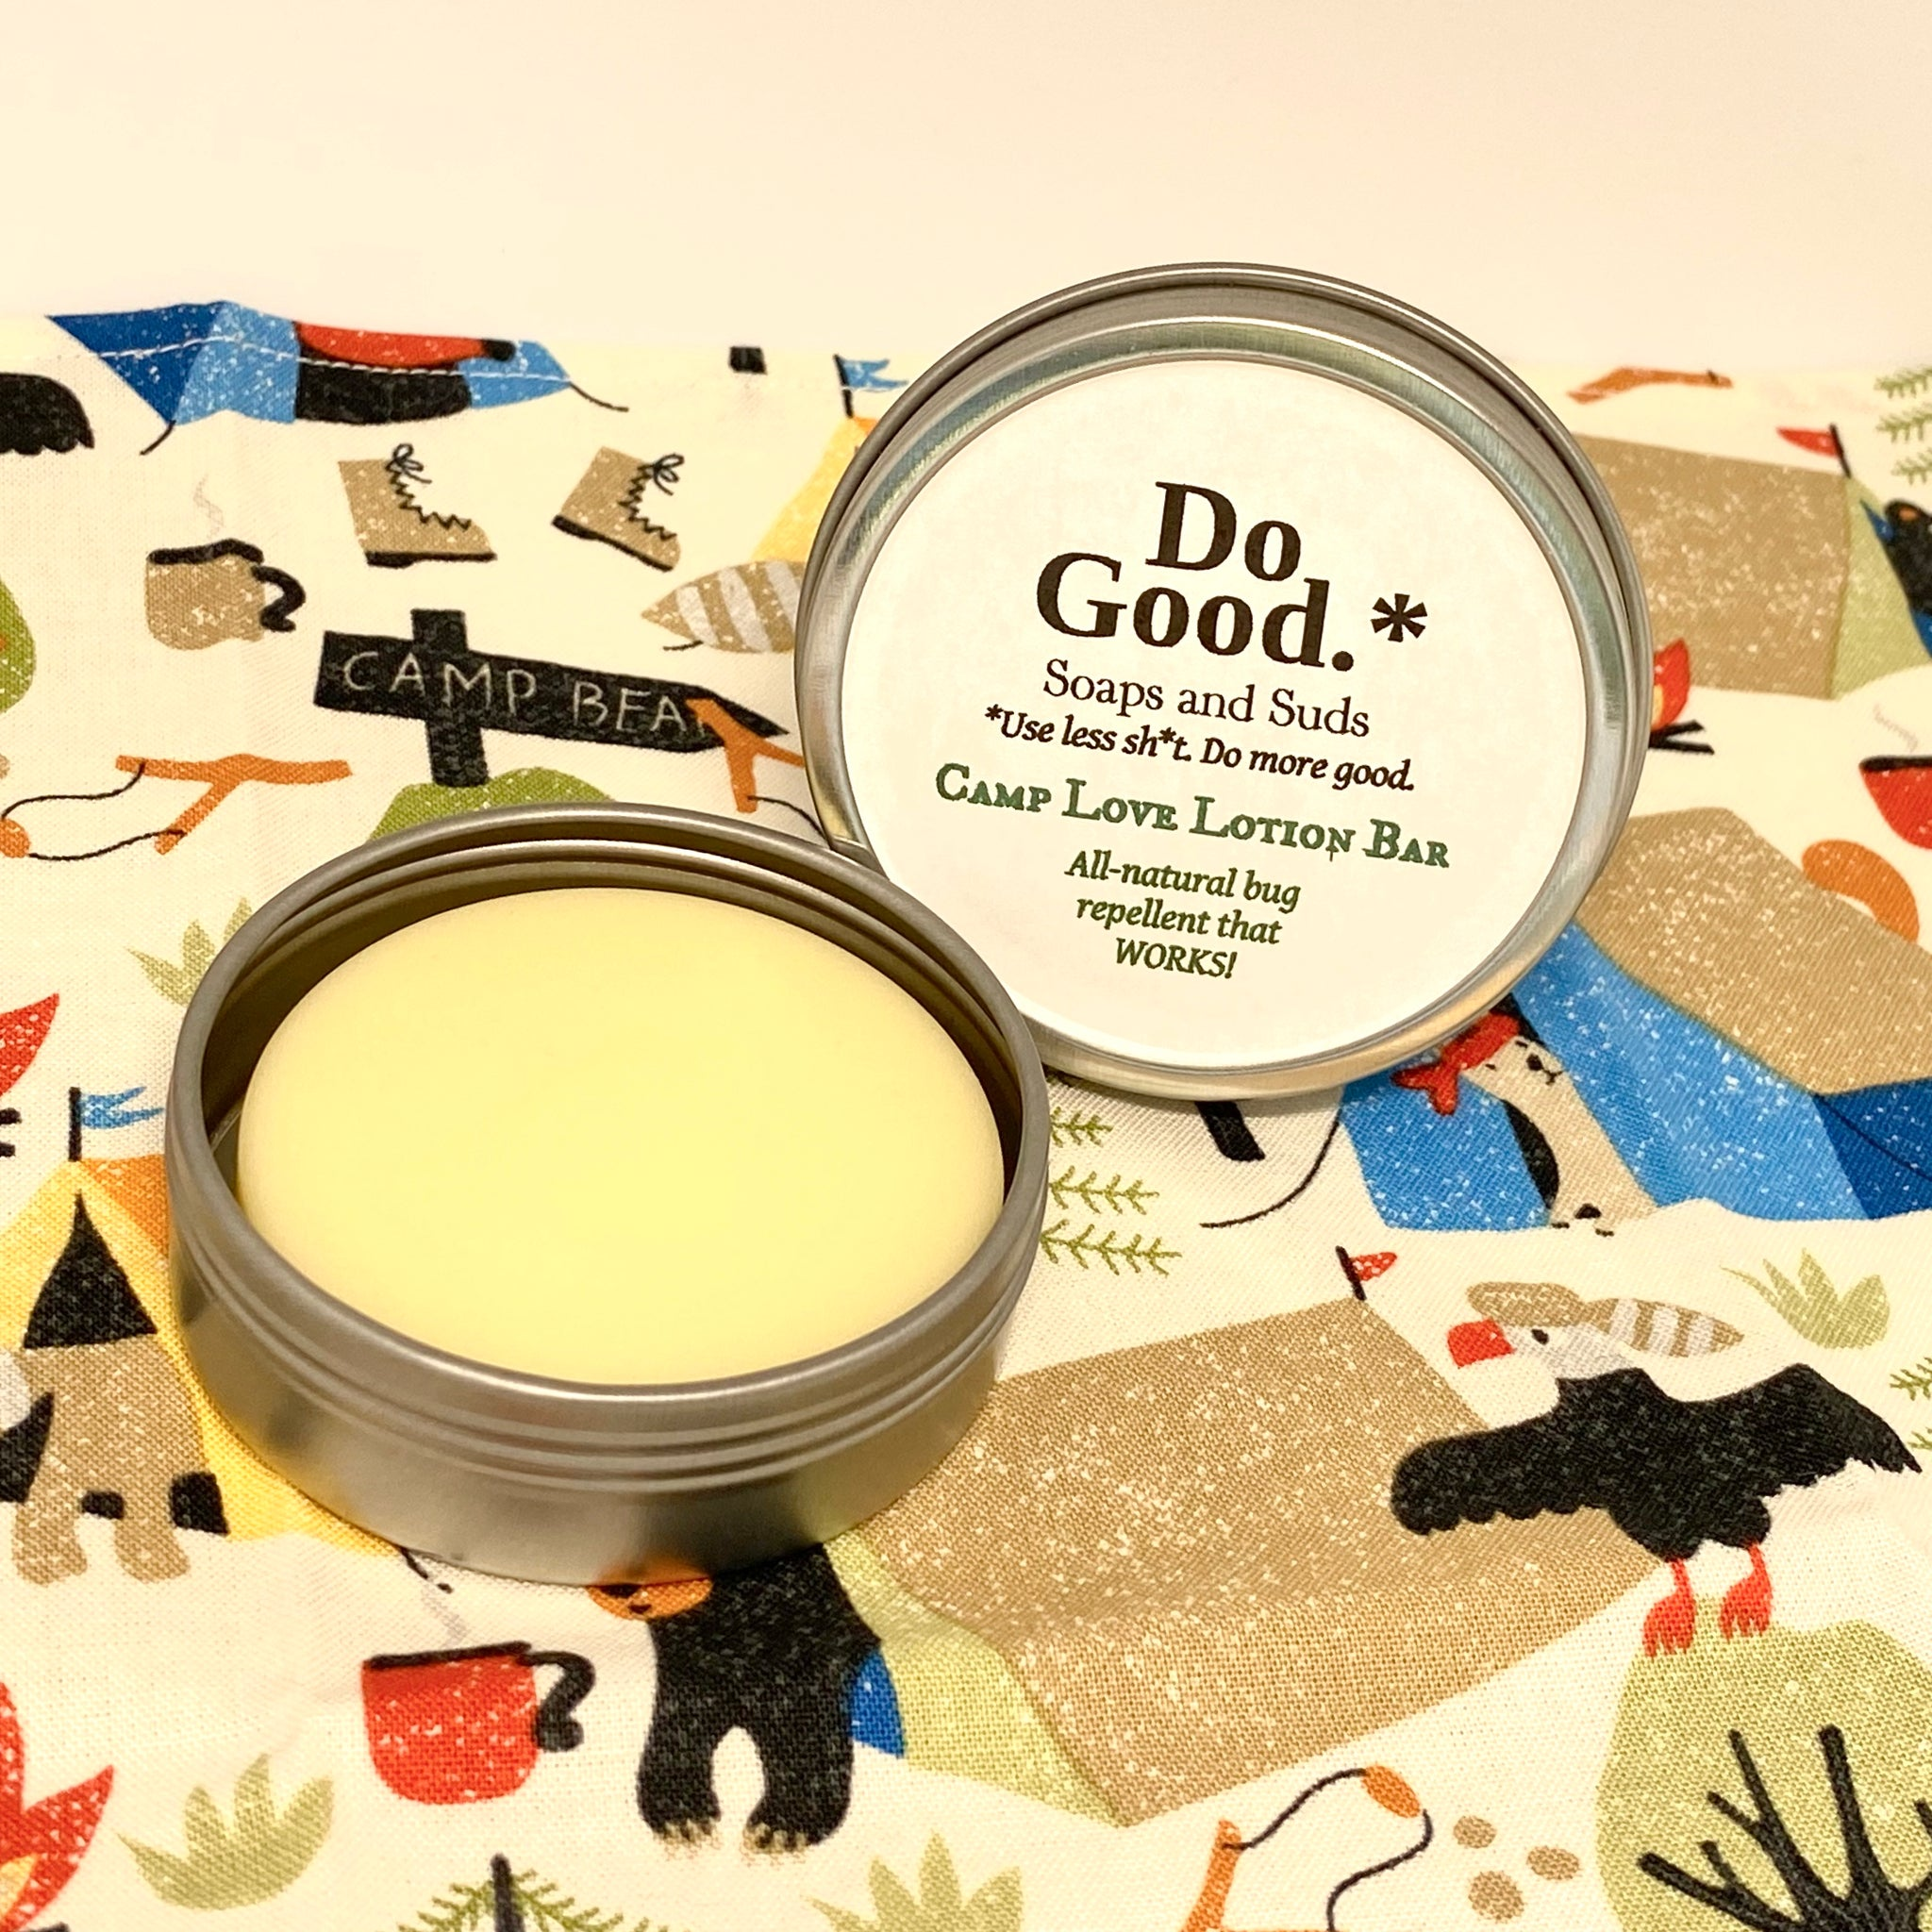 Camp Love Lotion Bar